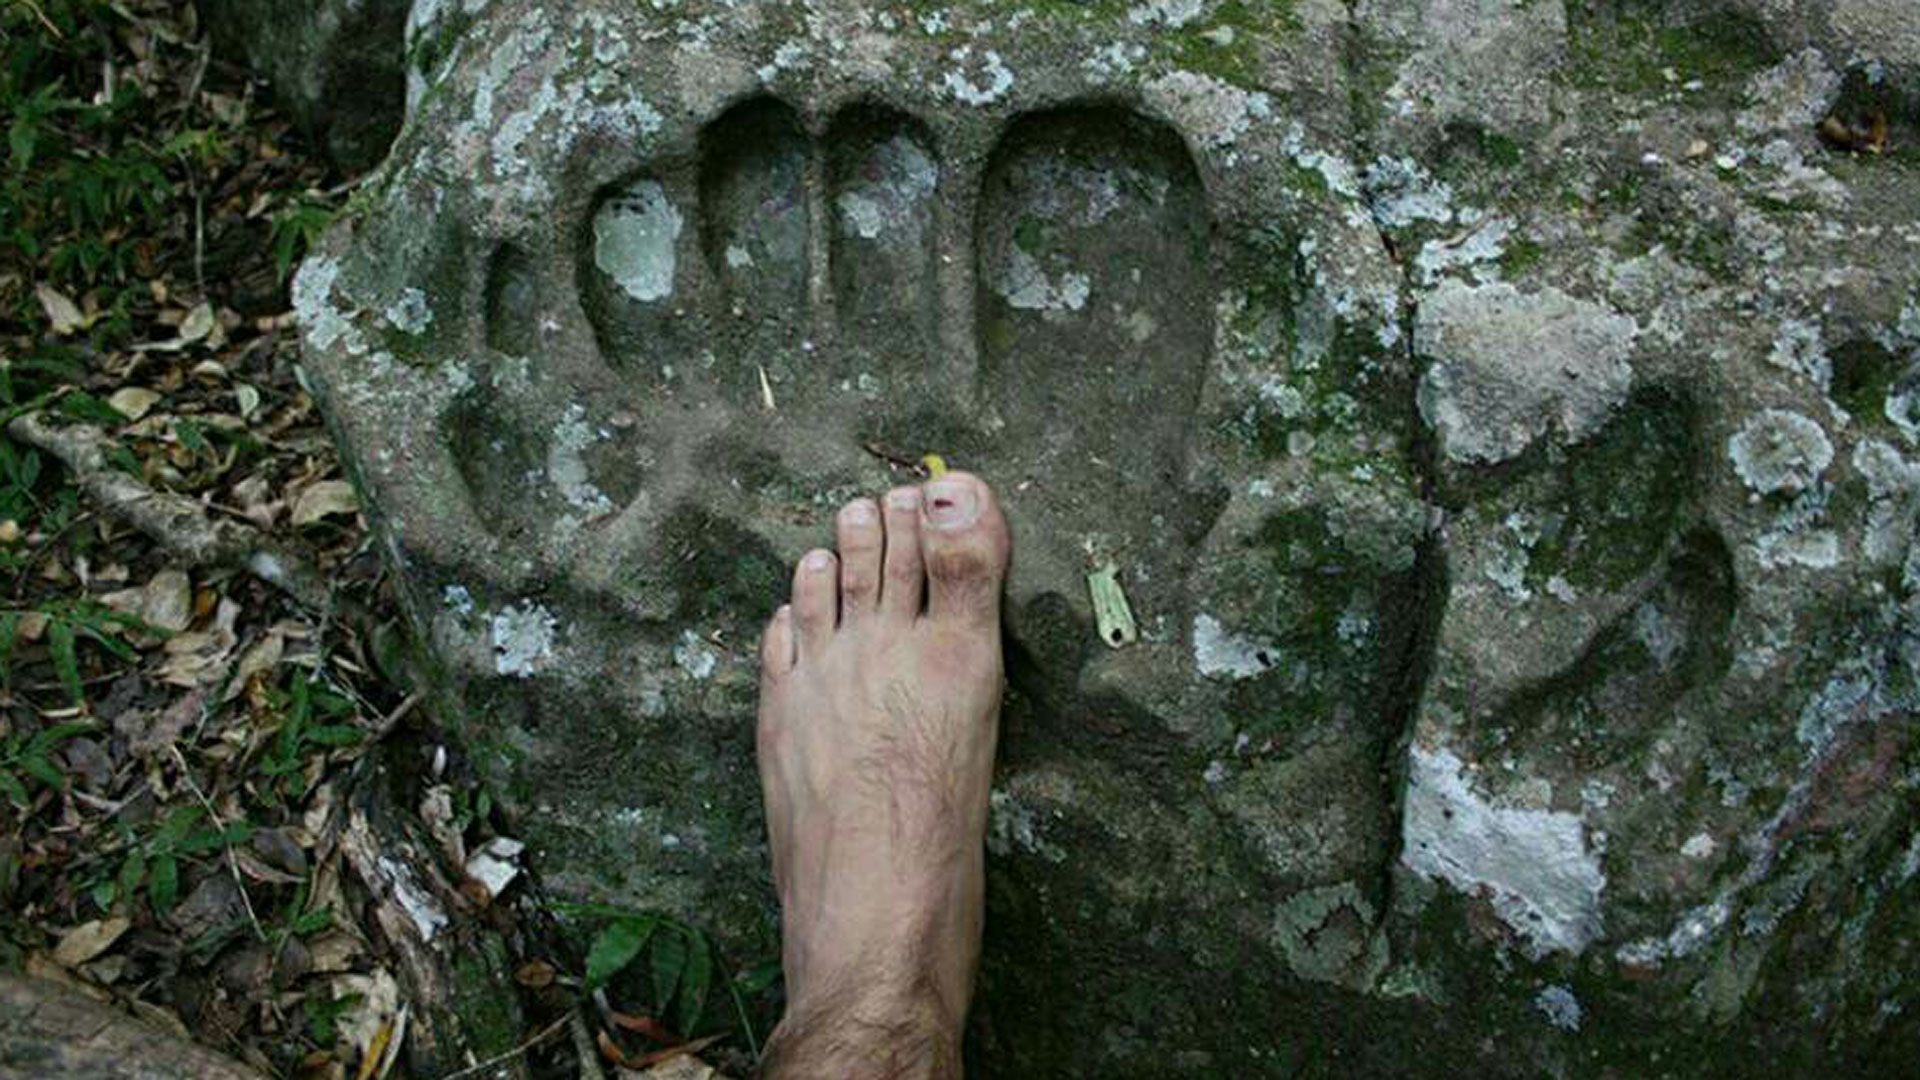 Footprint of a giant in petrified mud